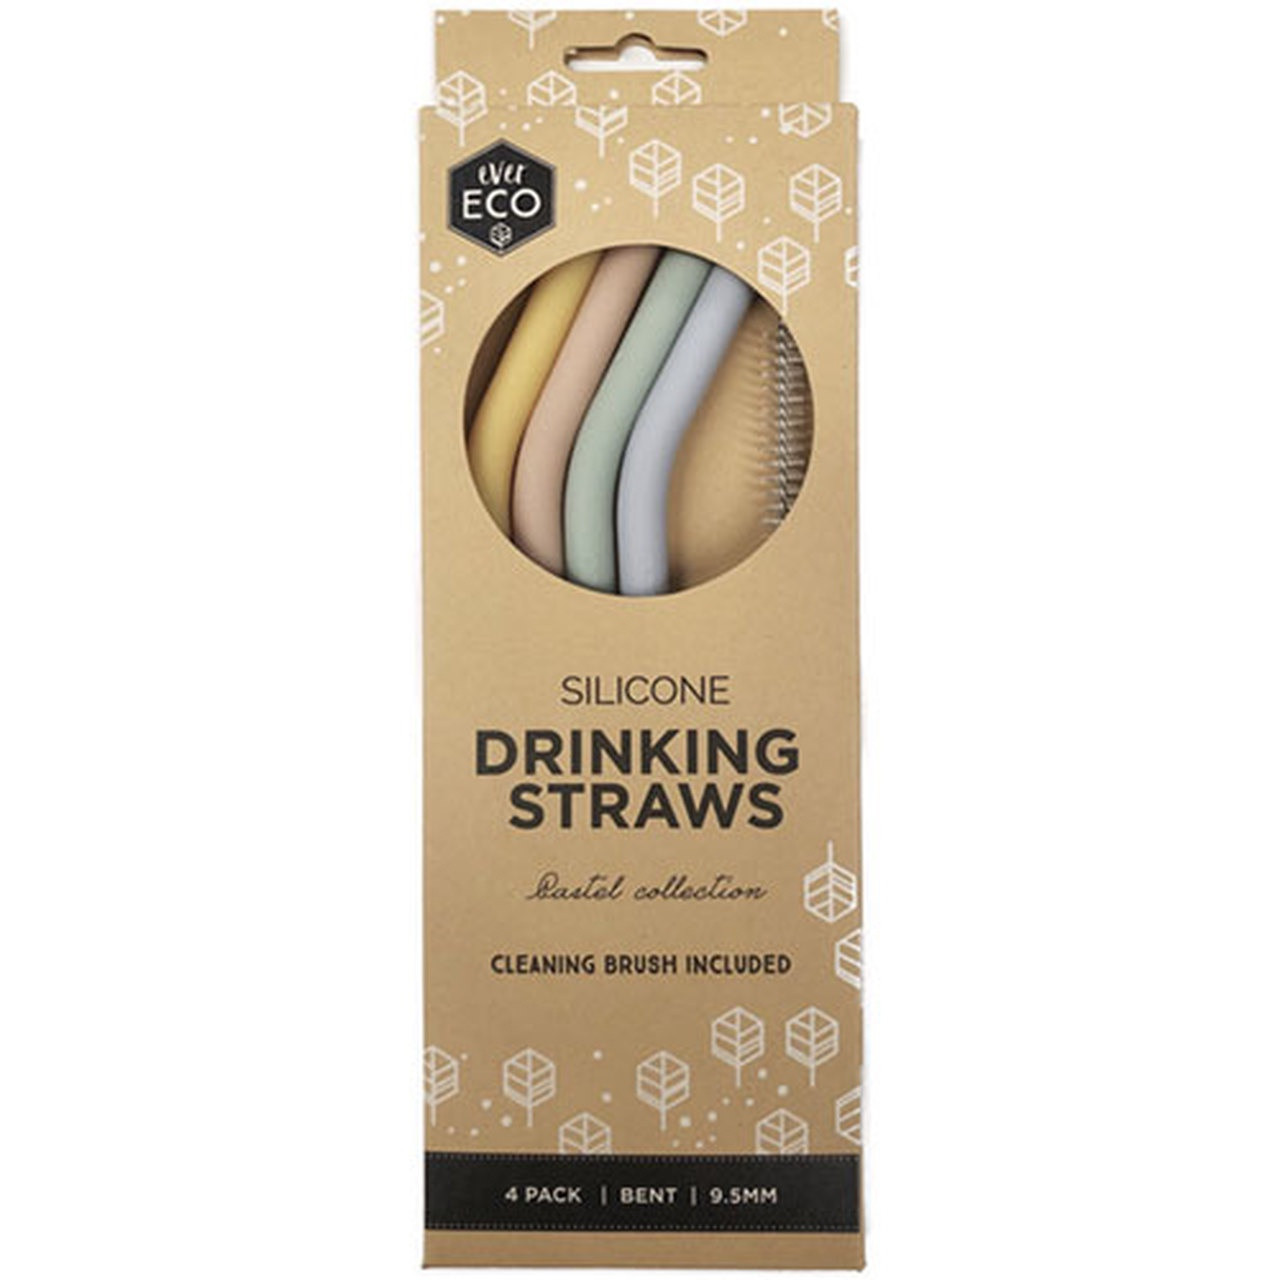 Ever Eco Silicone Drinking Straws 4pk at Baby Barn Discounts Ever Eco Silicone Drinking Straws are made from FDA approved premium grade silicone.